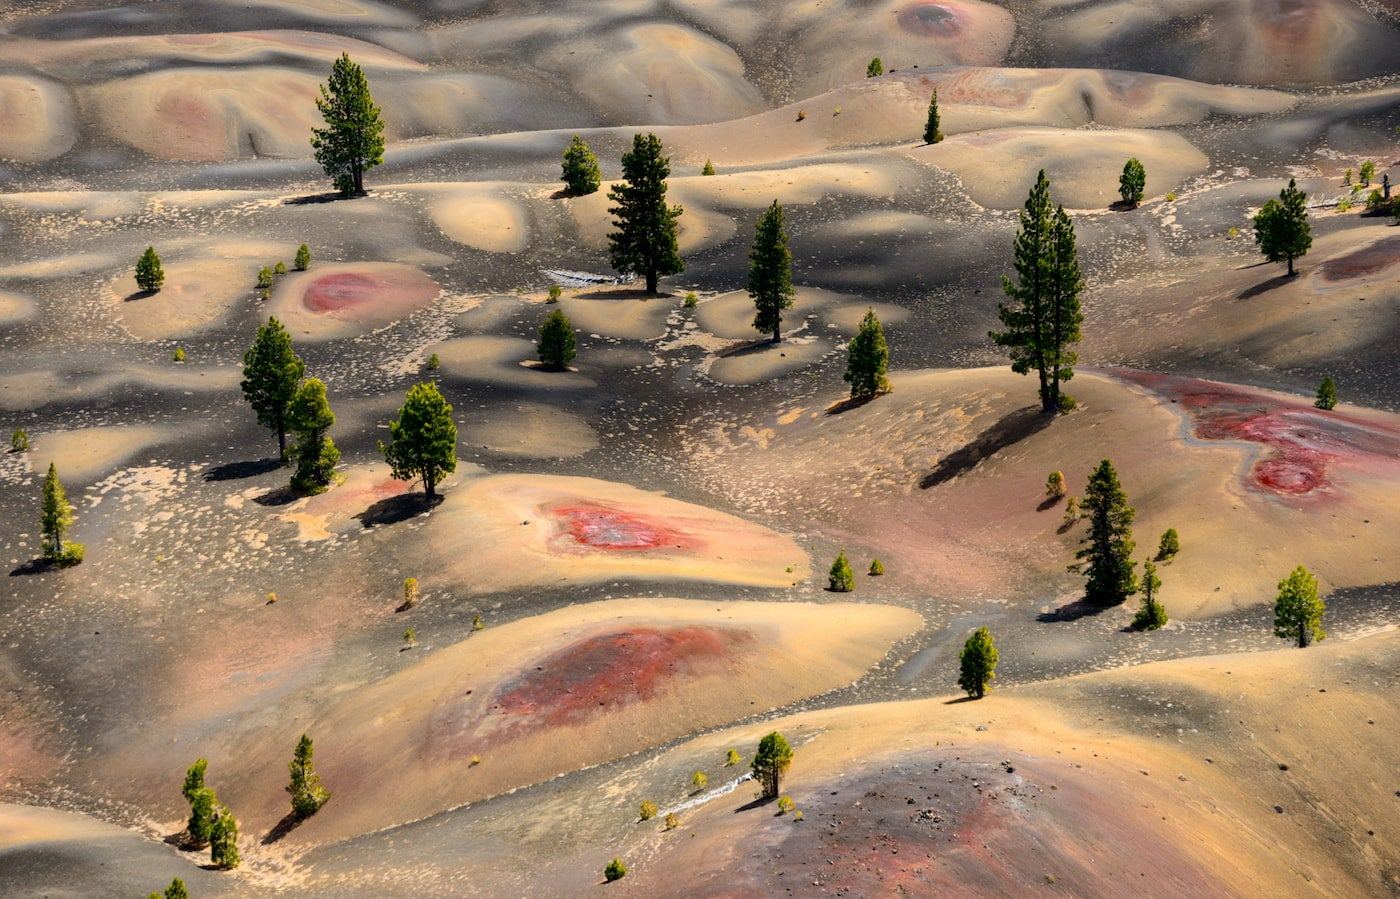 Aerial image of bumpy hills with red patches and sparse pine trees.